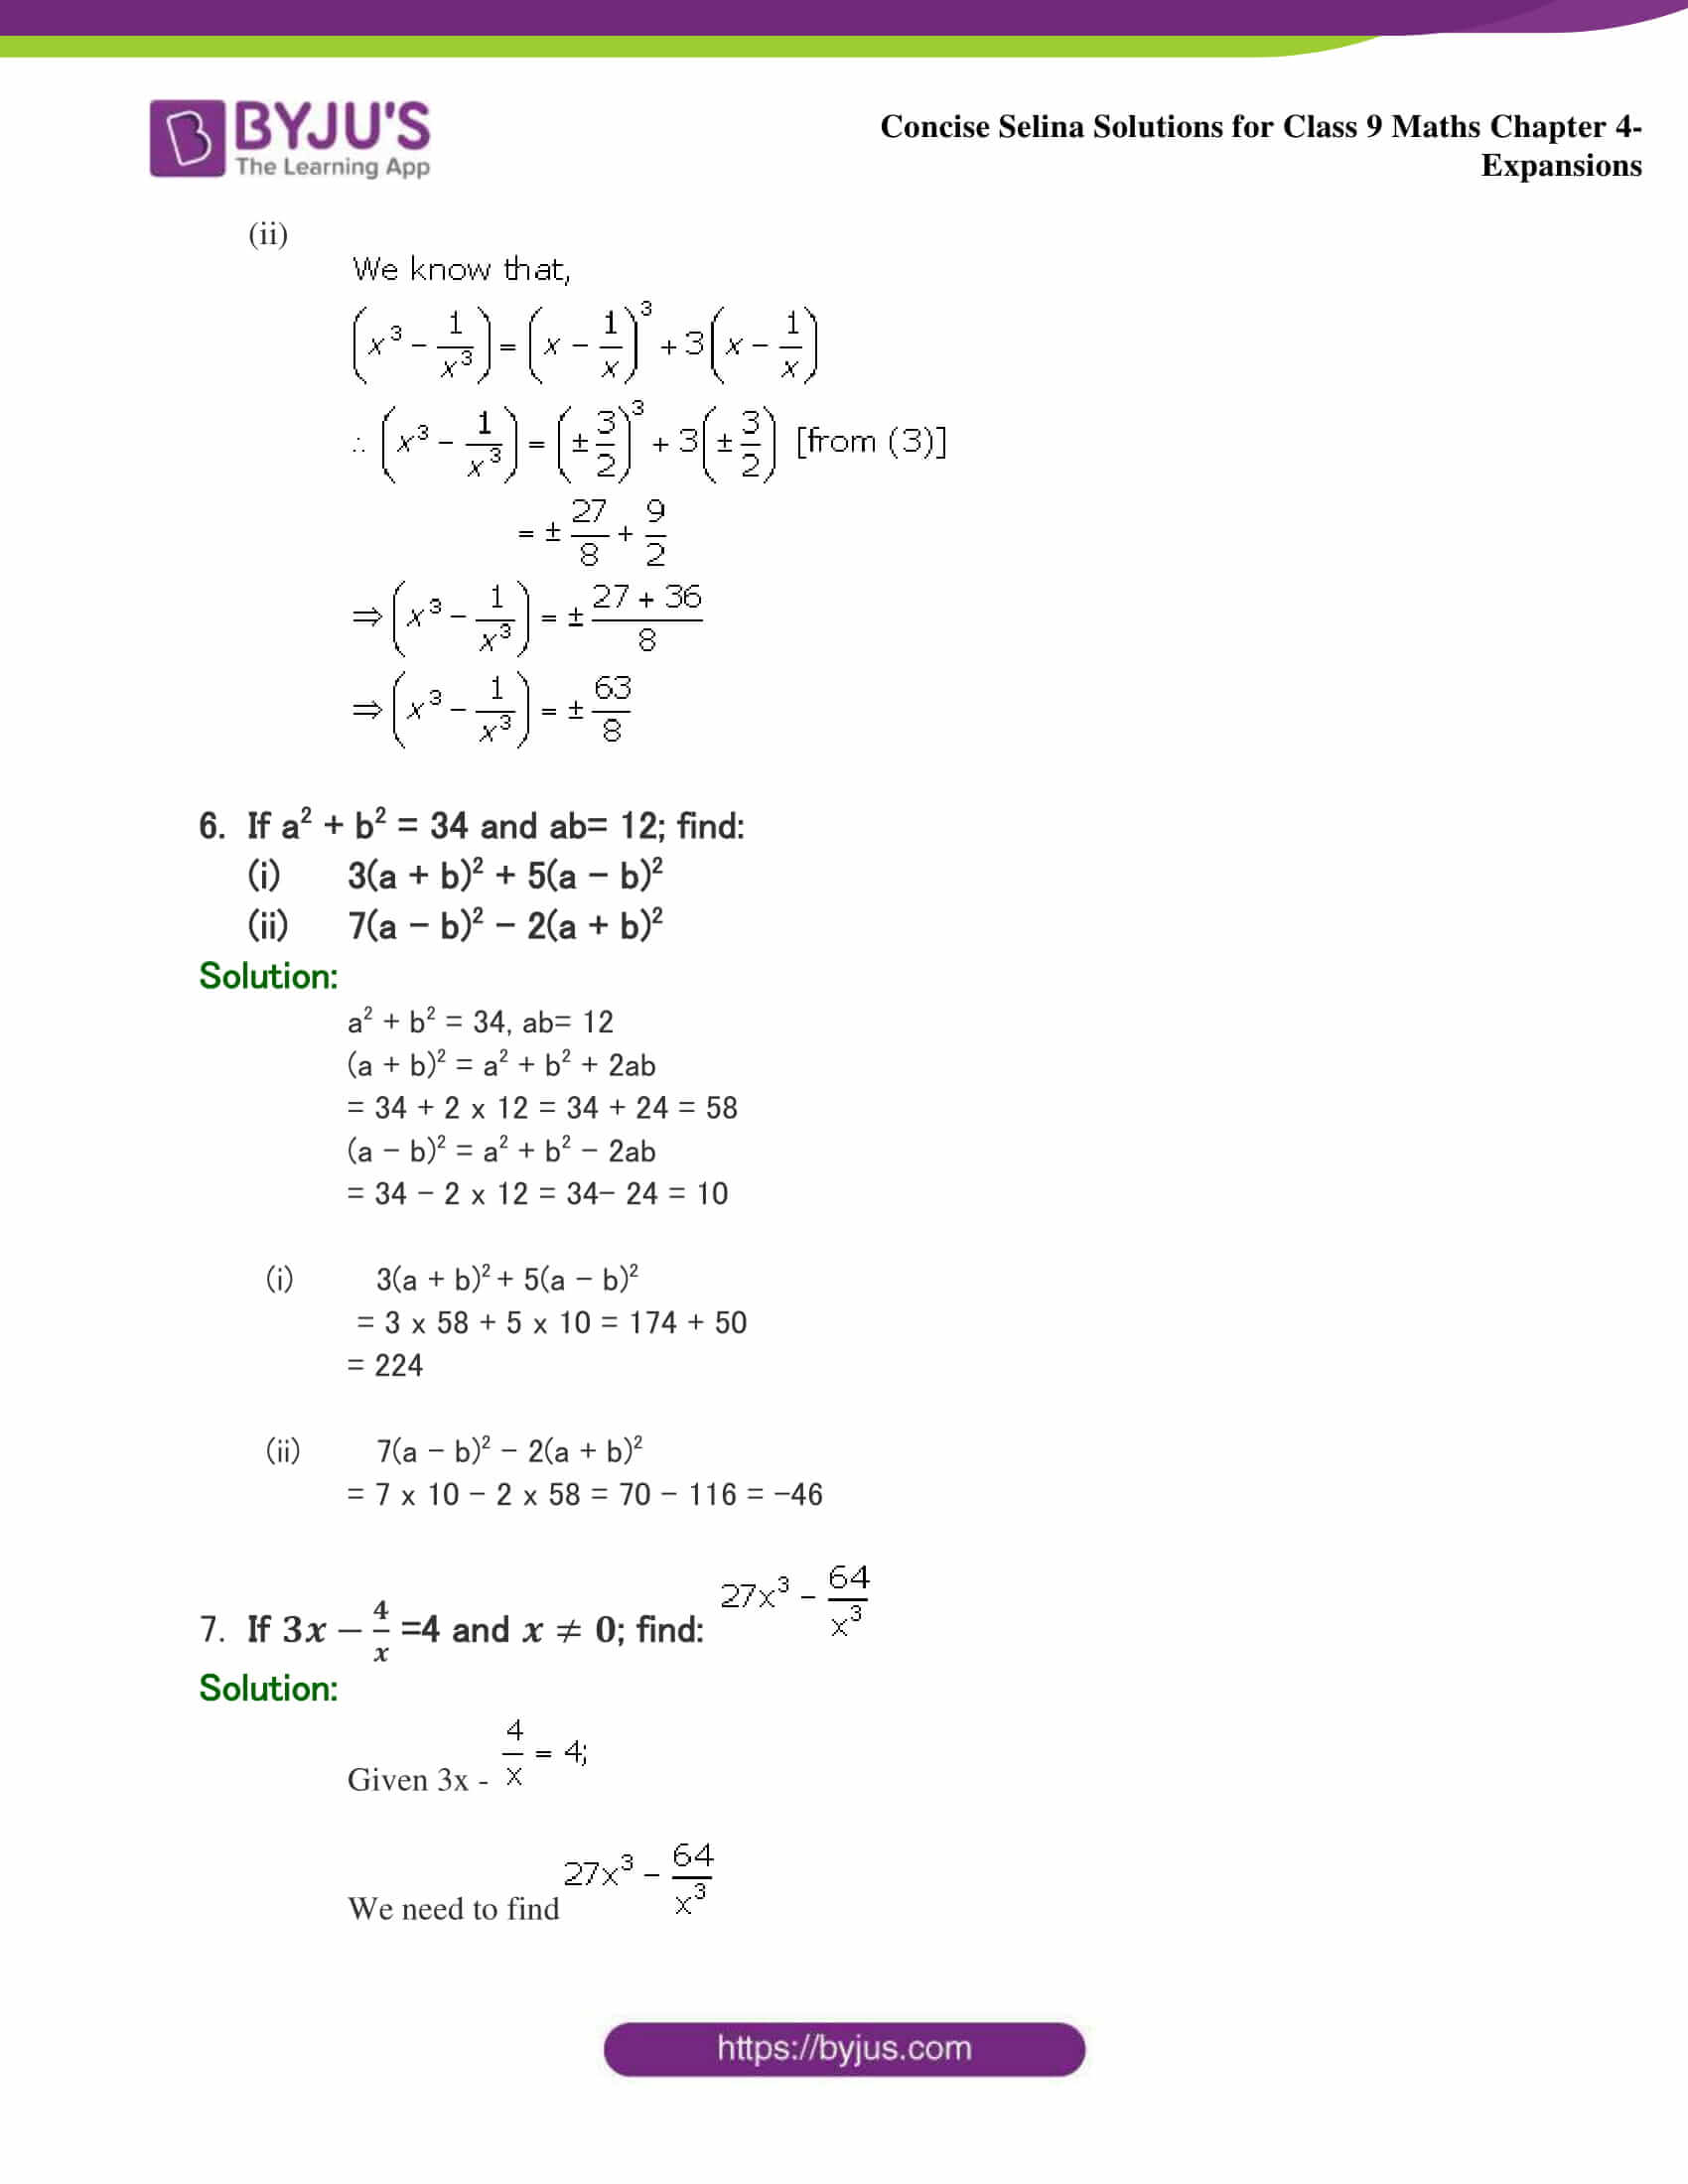 Selina Solutions Class 9 Maths Chapter 4 Expansions part 34